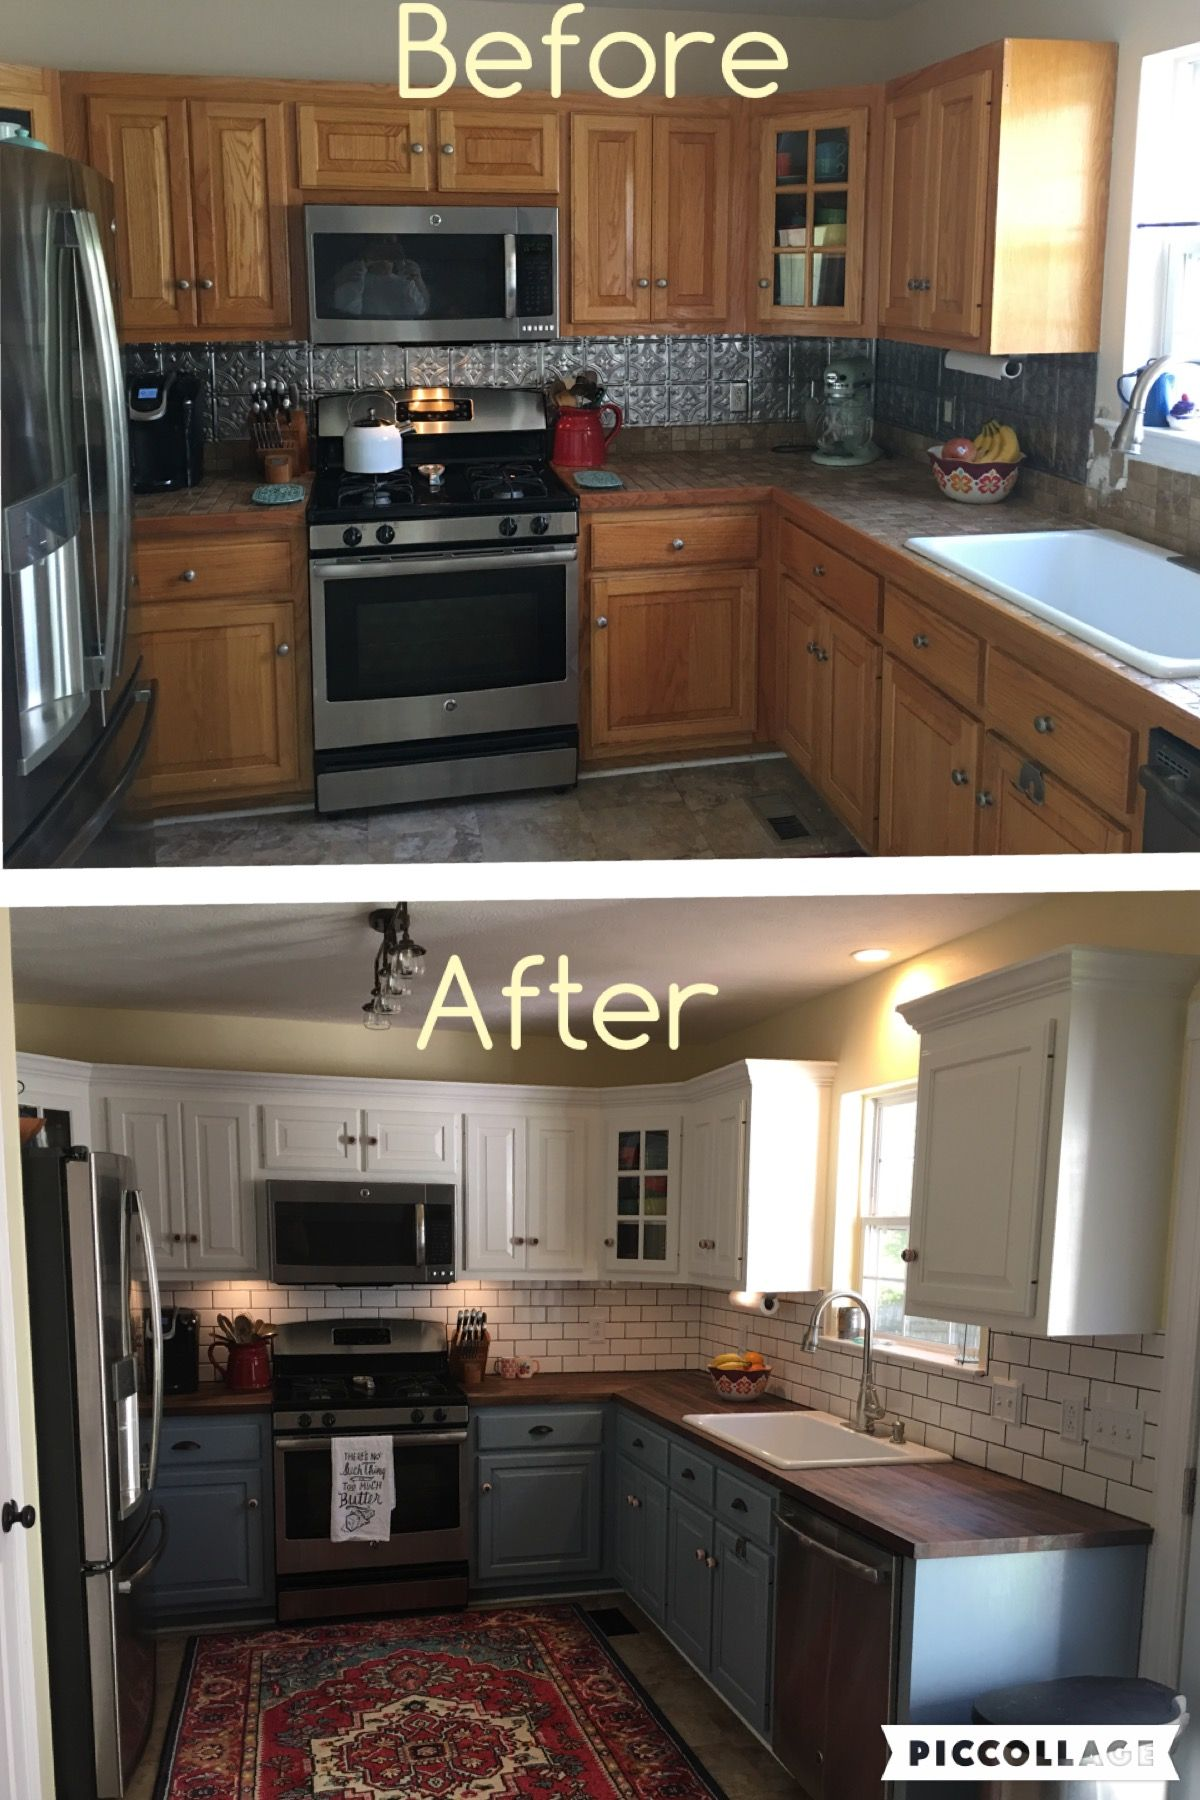 Kitchen Updates Hand Towels For The Two Toned Cabinets Valspar Cabinet Enamel From Lowes Successful Updating Best Paint By Far